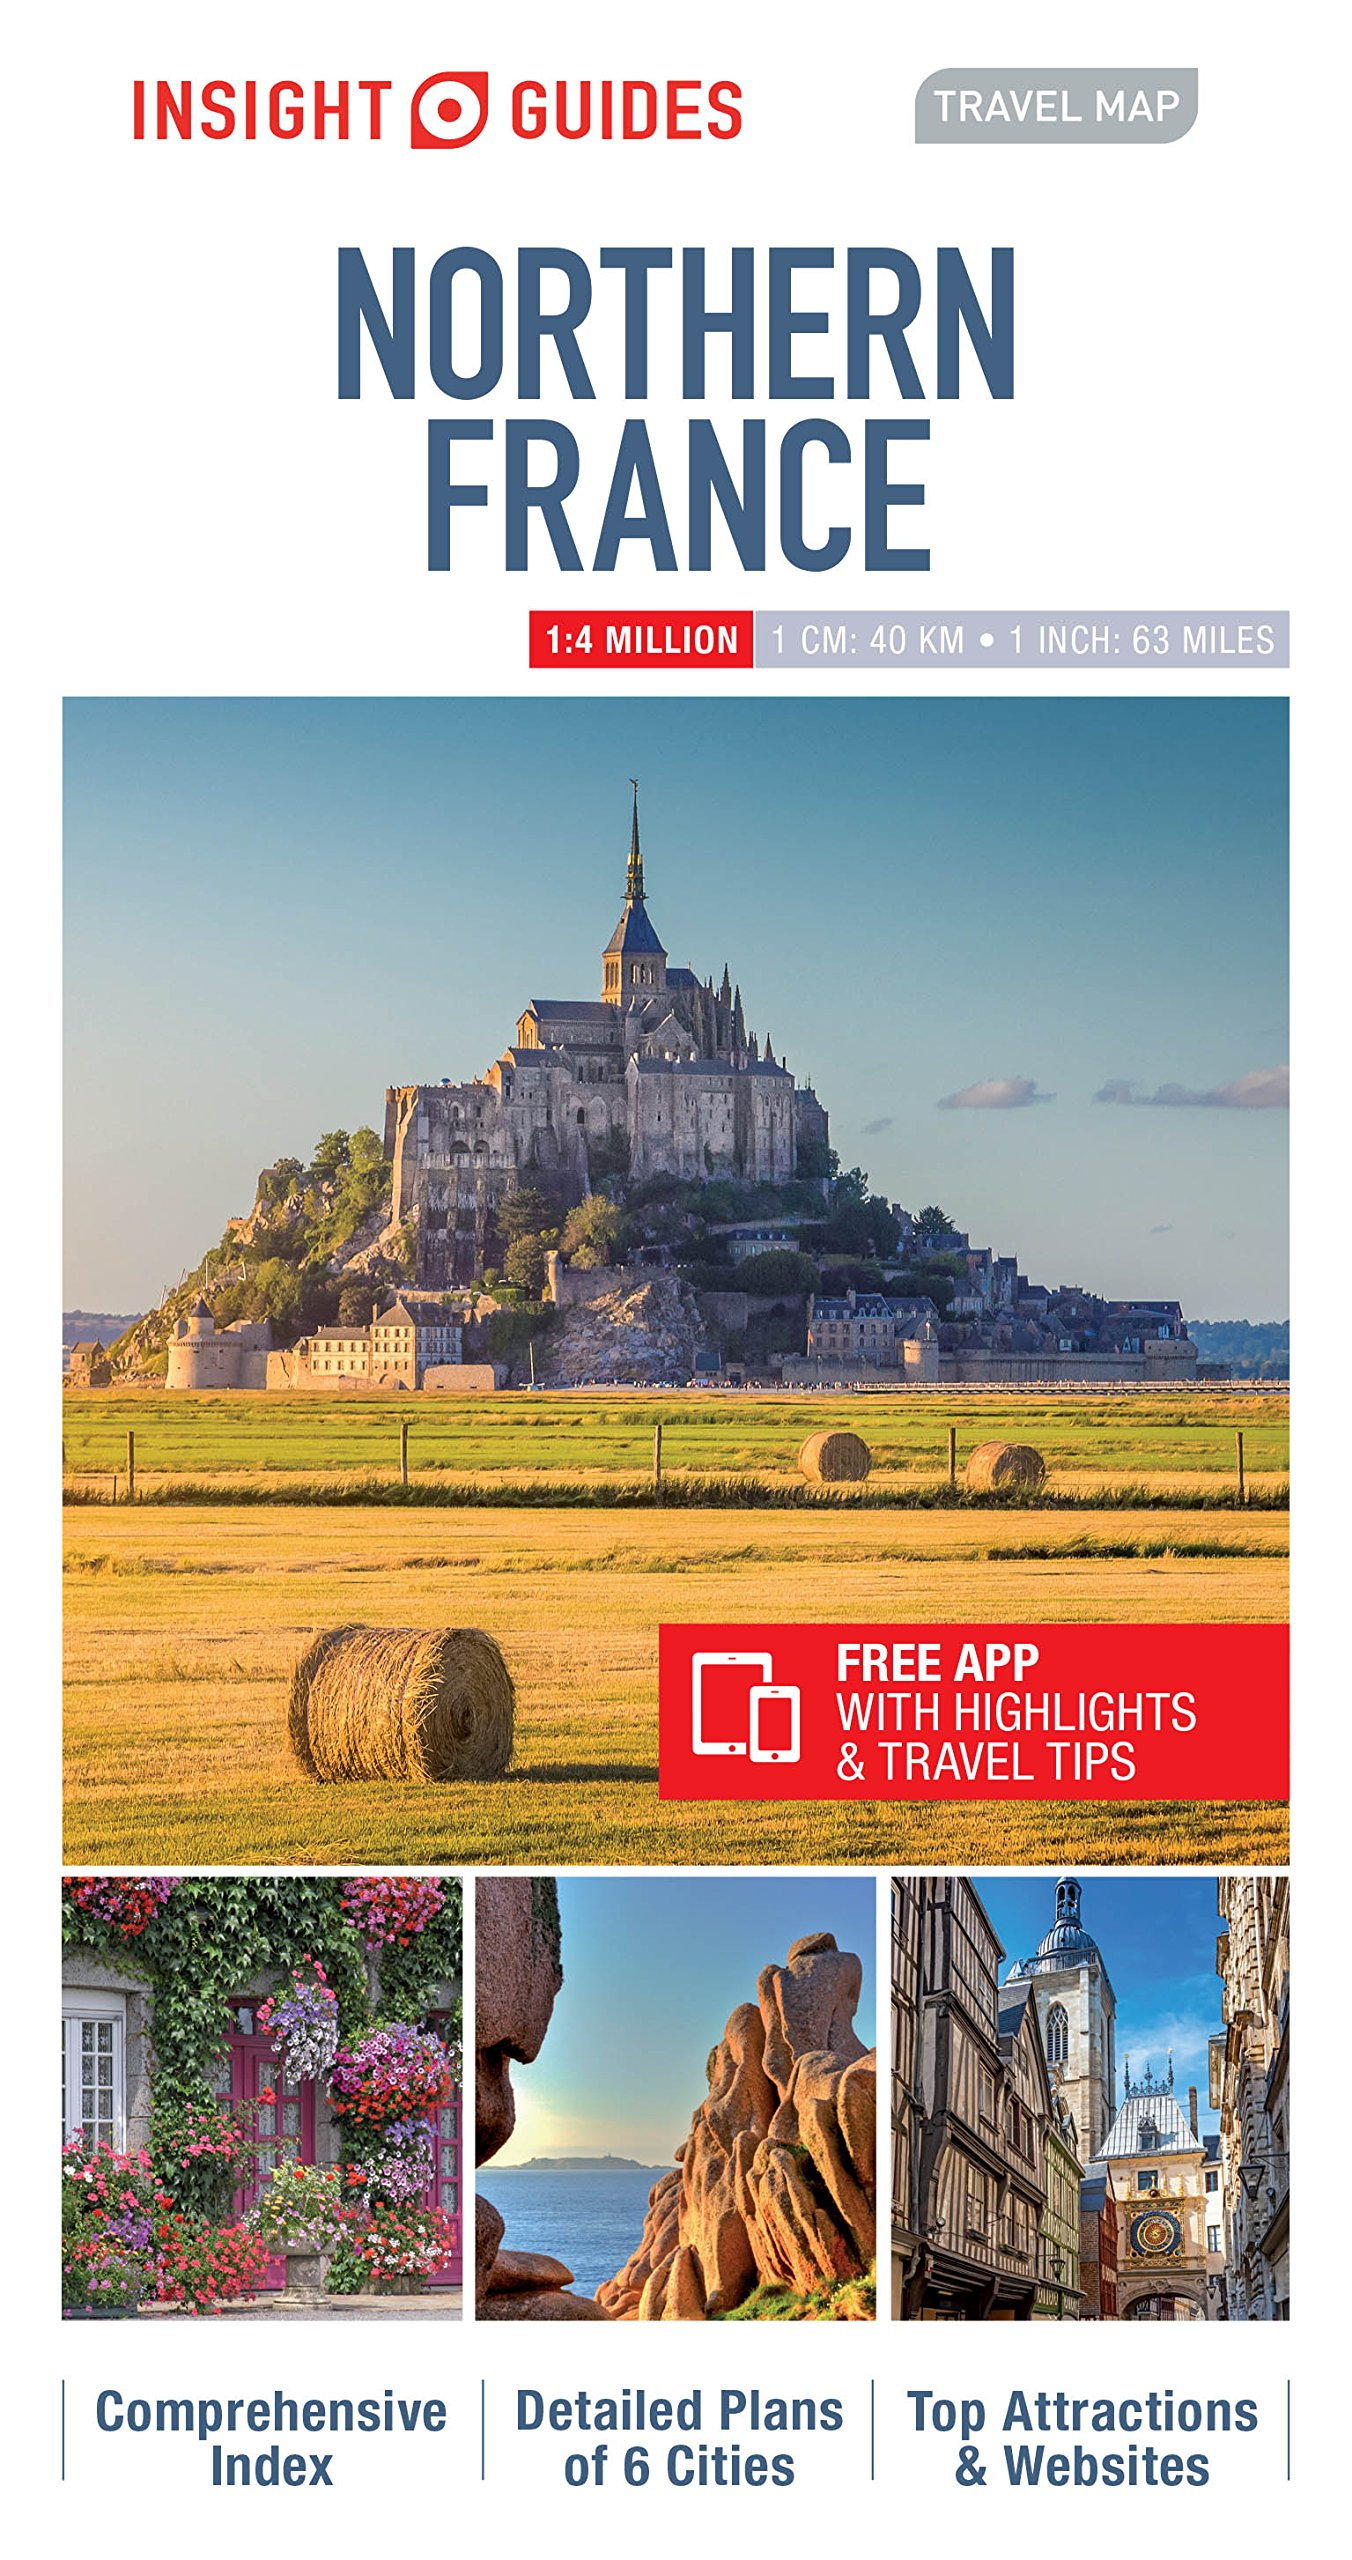 Insight guides travel map northern france insight travel maps insight guides travel map northern france insight travel maps insight guides 9781780055091 amazon books gumiabroncs Image collections